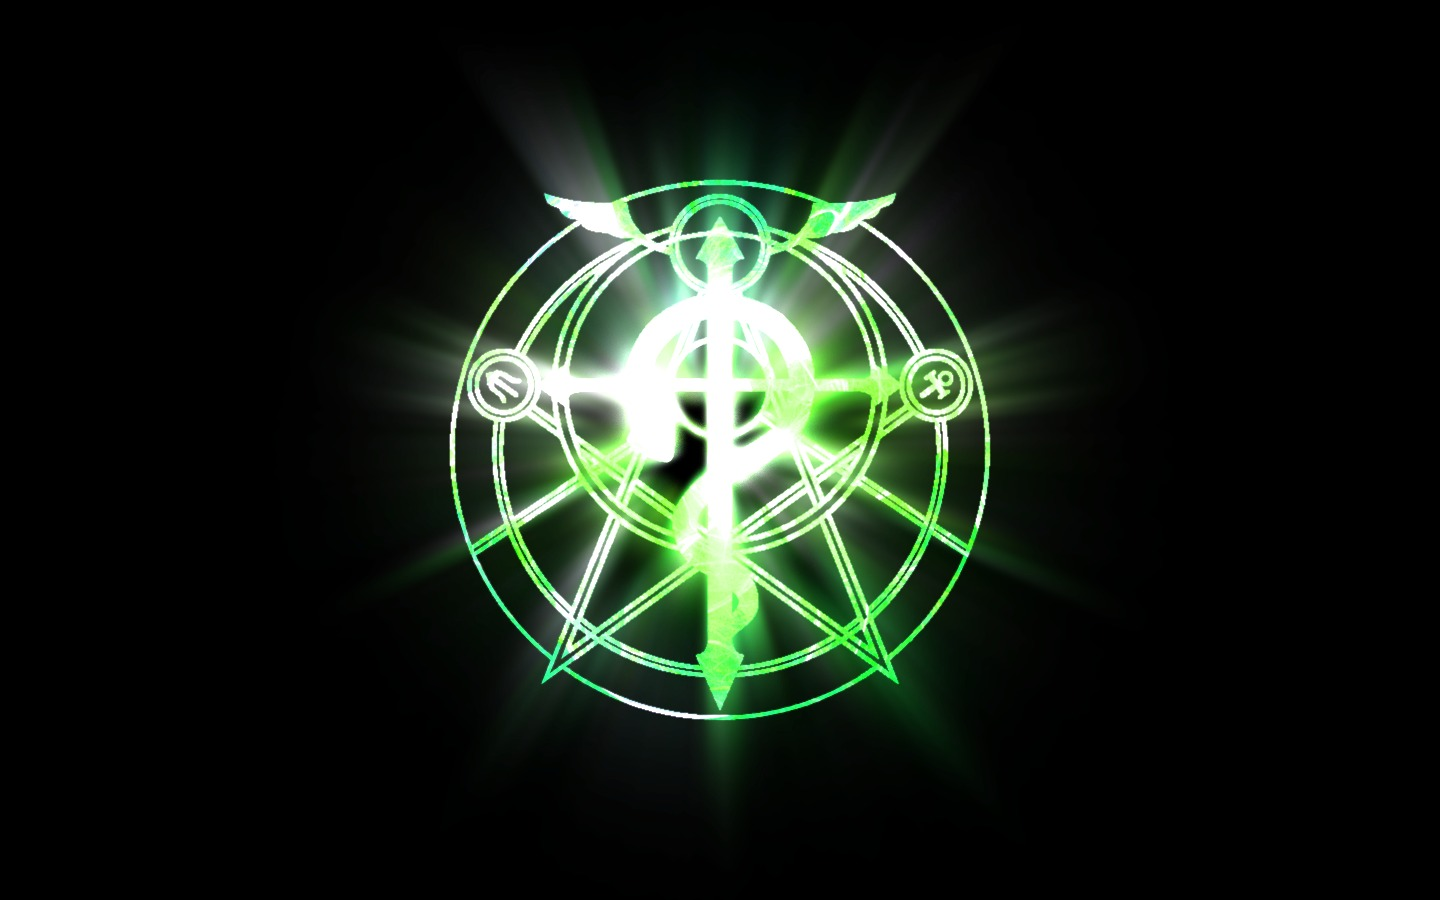 Free Download Transmutation Circle Wallpaper 4042